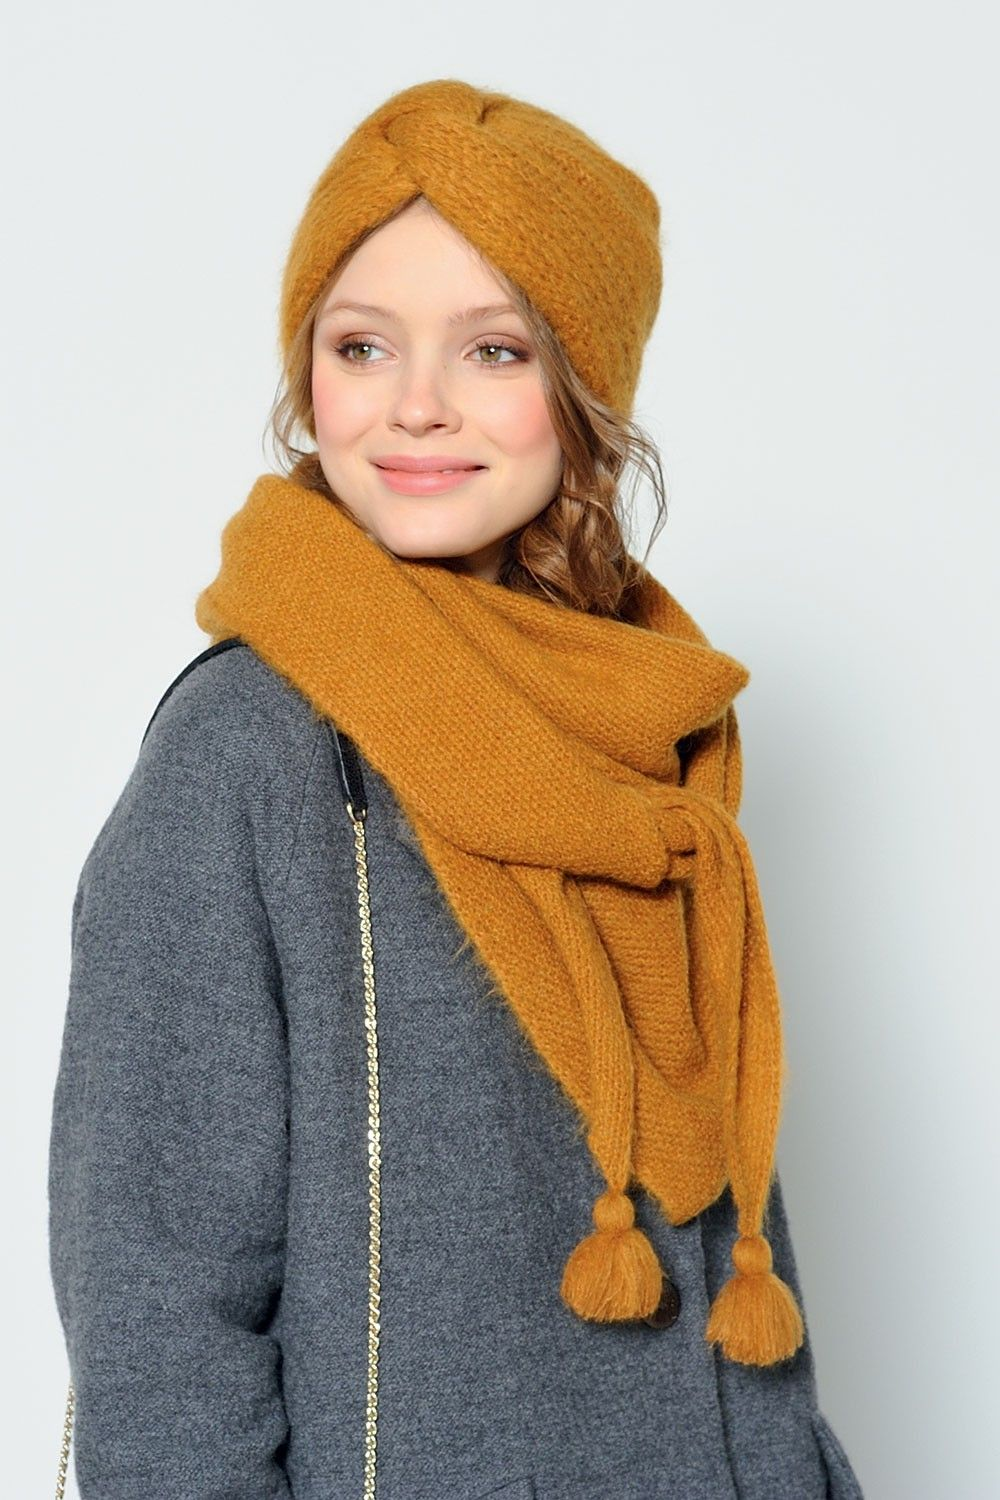 Find a pattern and get someone to make this turban headband for me ...